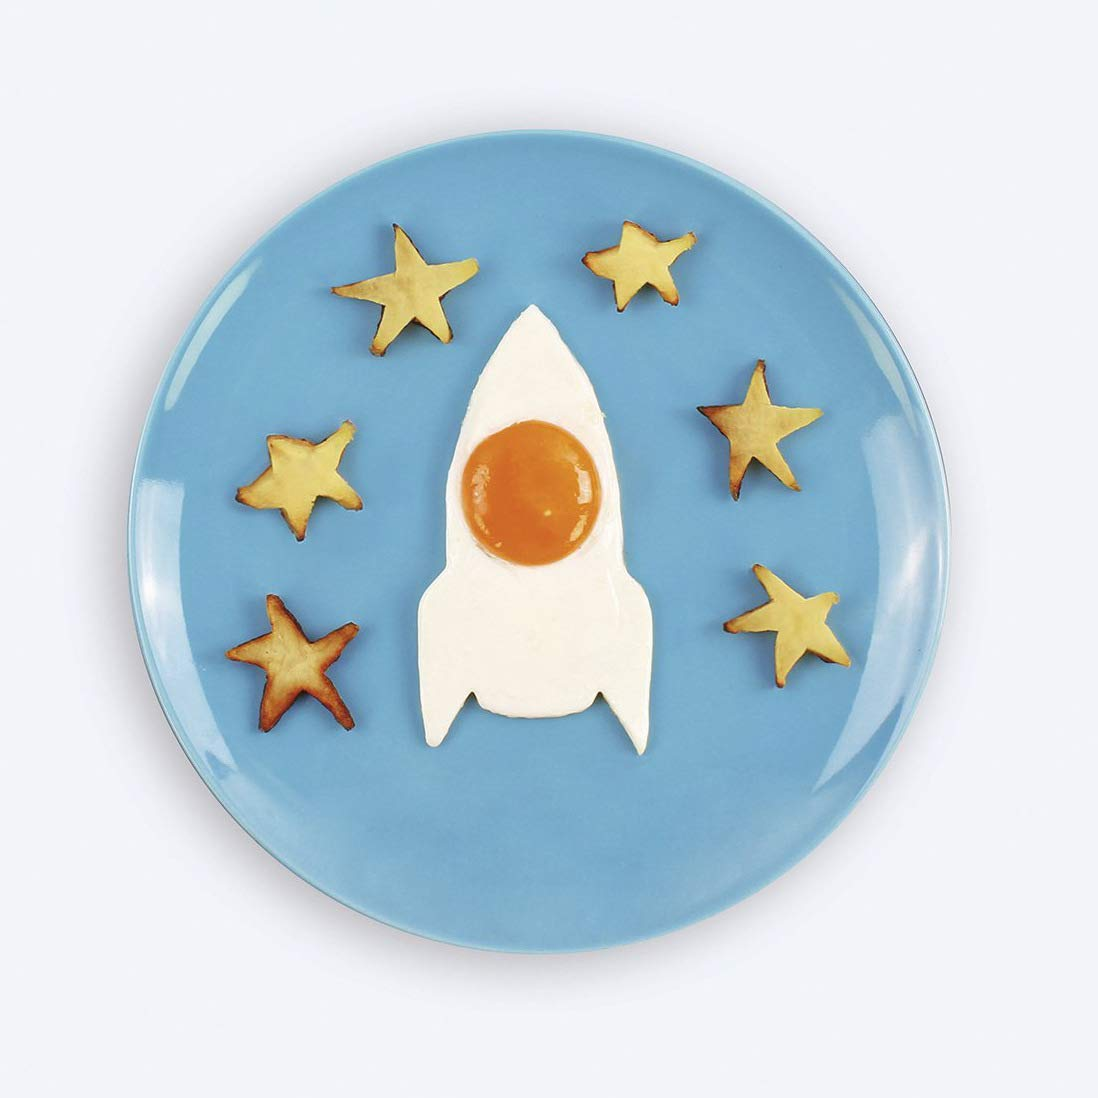 Space Egg Mold Make Rocket and Astronaut Pancake Eggs Nonstick Mold Ring for Stunning Breakfasts Every Time (Rocket)